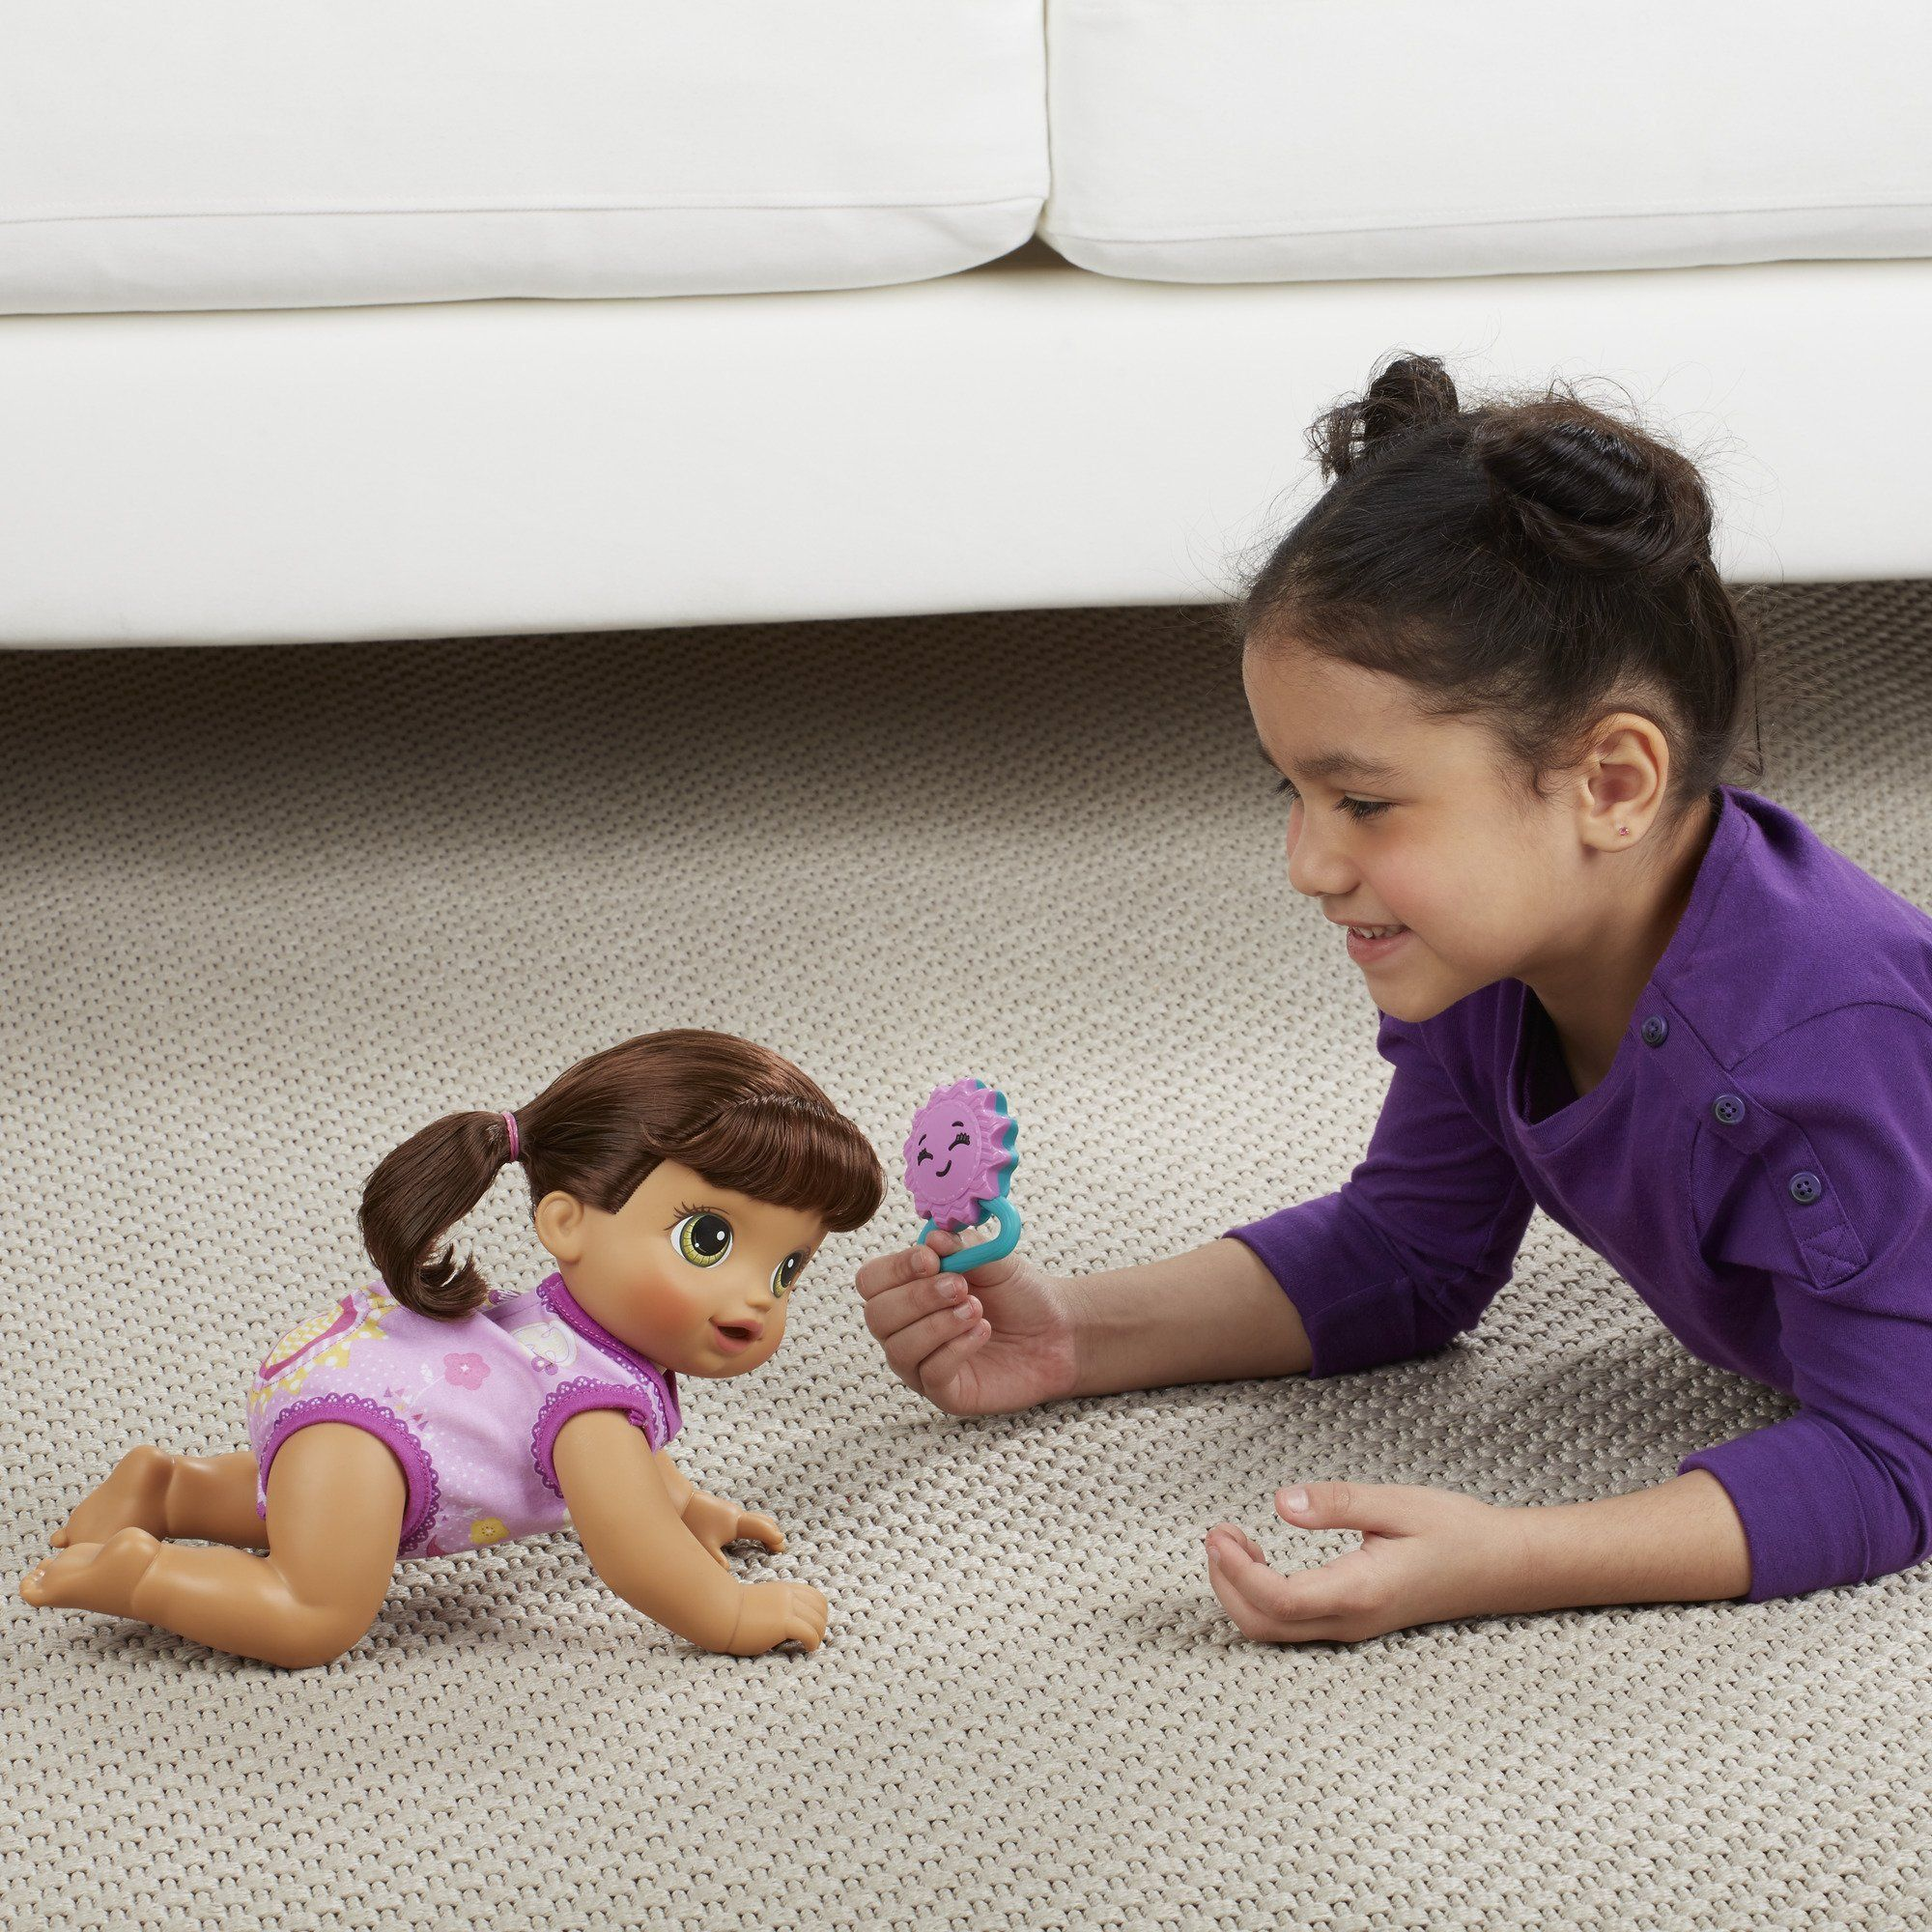 Baby Alive Baby Go Bye Bye Brunette More Info Could Be Found At The Image Url Note Amazon Affiliate Link Toys Baby Alive Taking Care Of Baby Baby